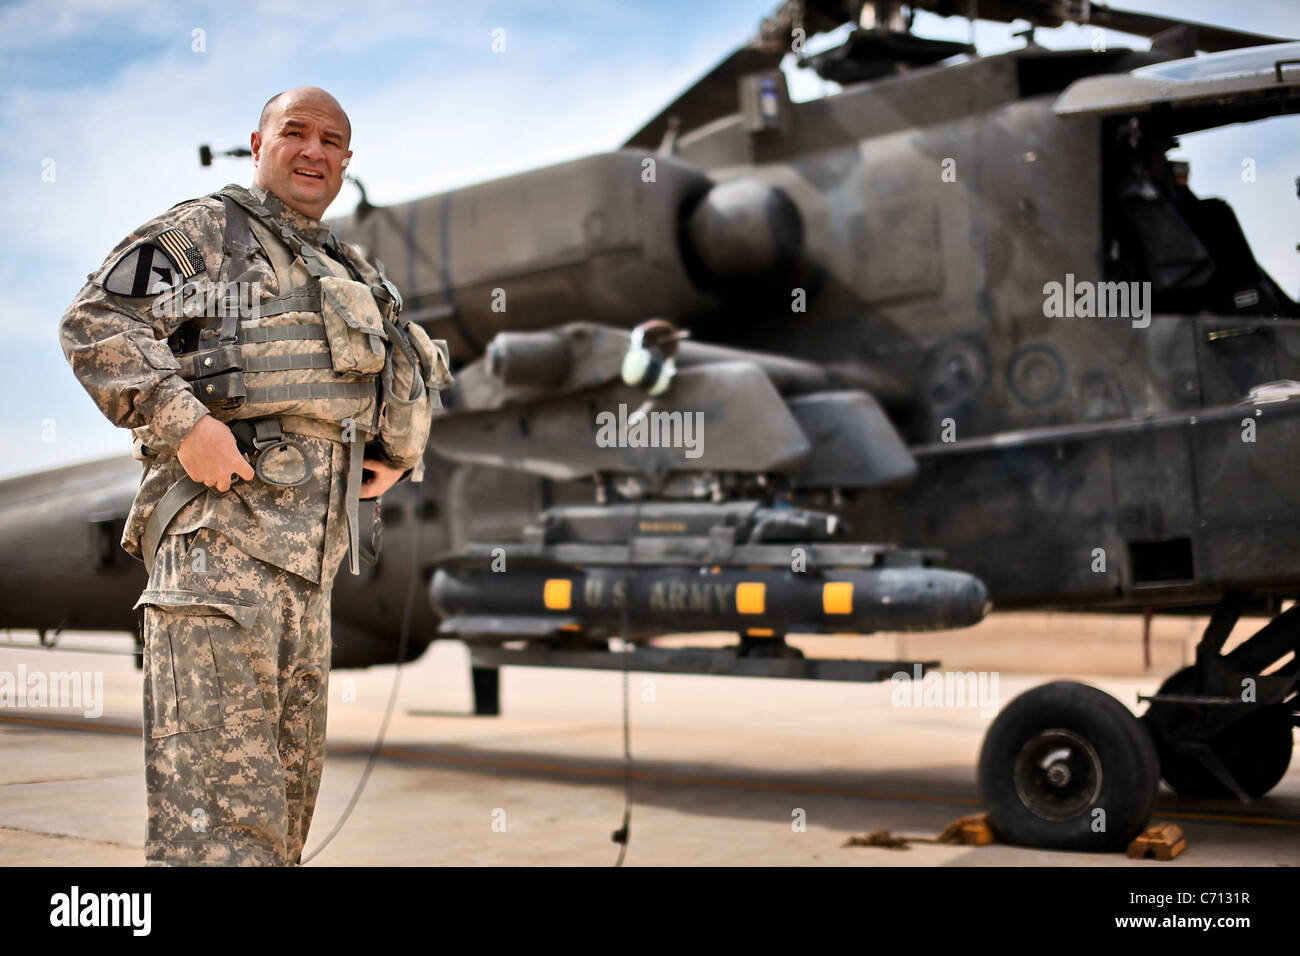 Having accrued 5,200 hours of flight time in his Army career, Chief Warrant Officer 5 Donald Washabaugh, from Collingswood, Stock Photo